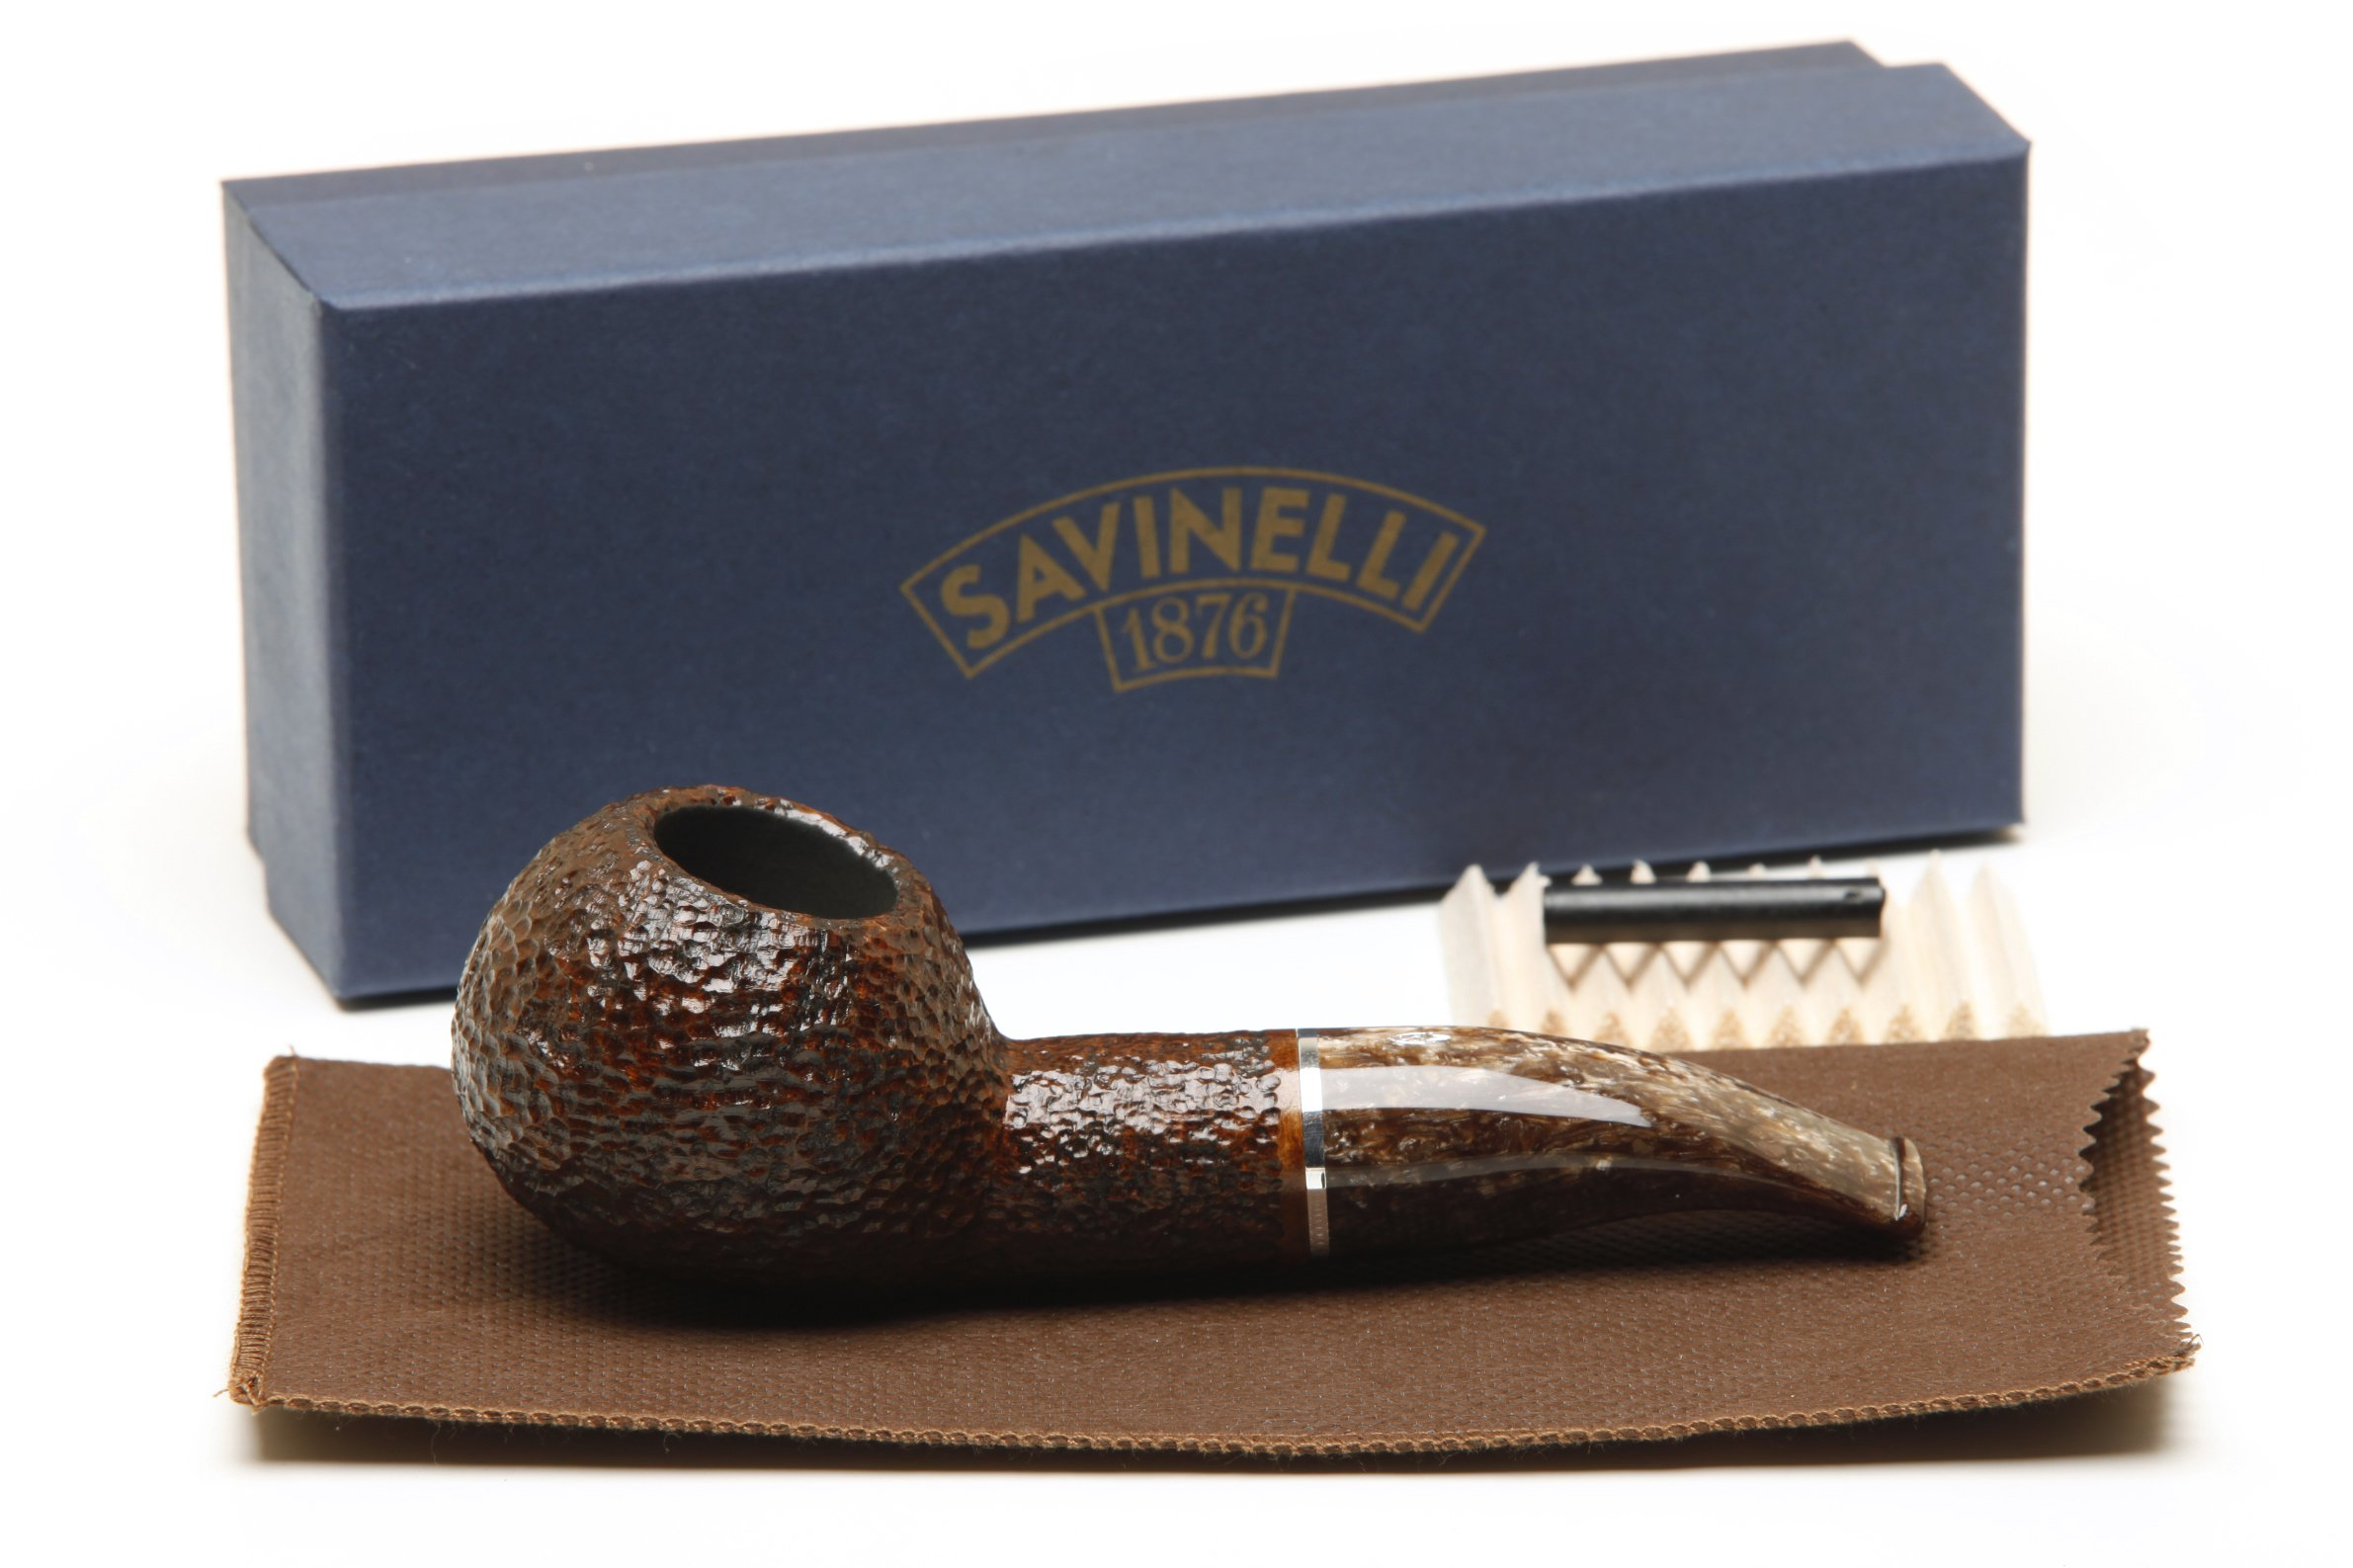 Savinelli Marron Glace 320 KS Rustic Brown Tobacco Pipe